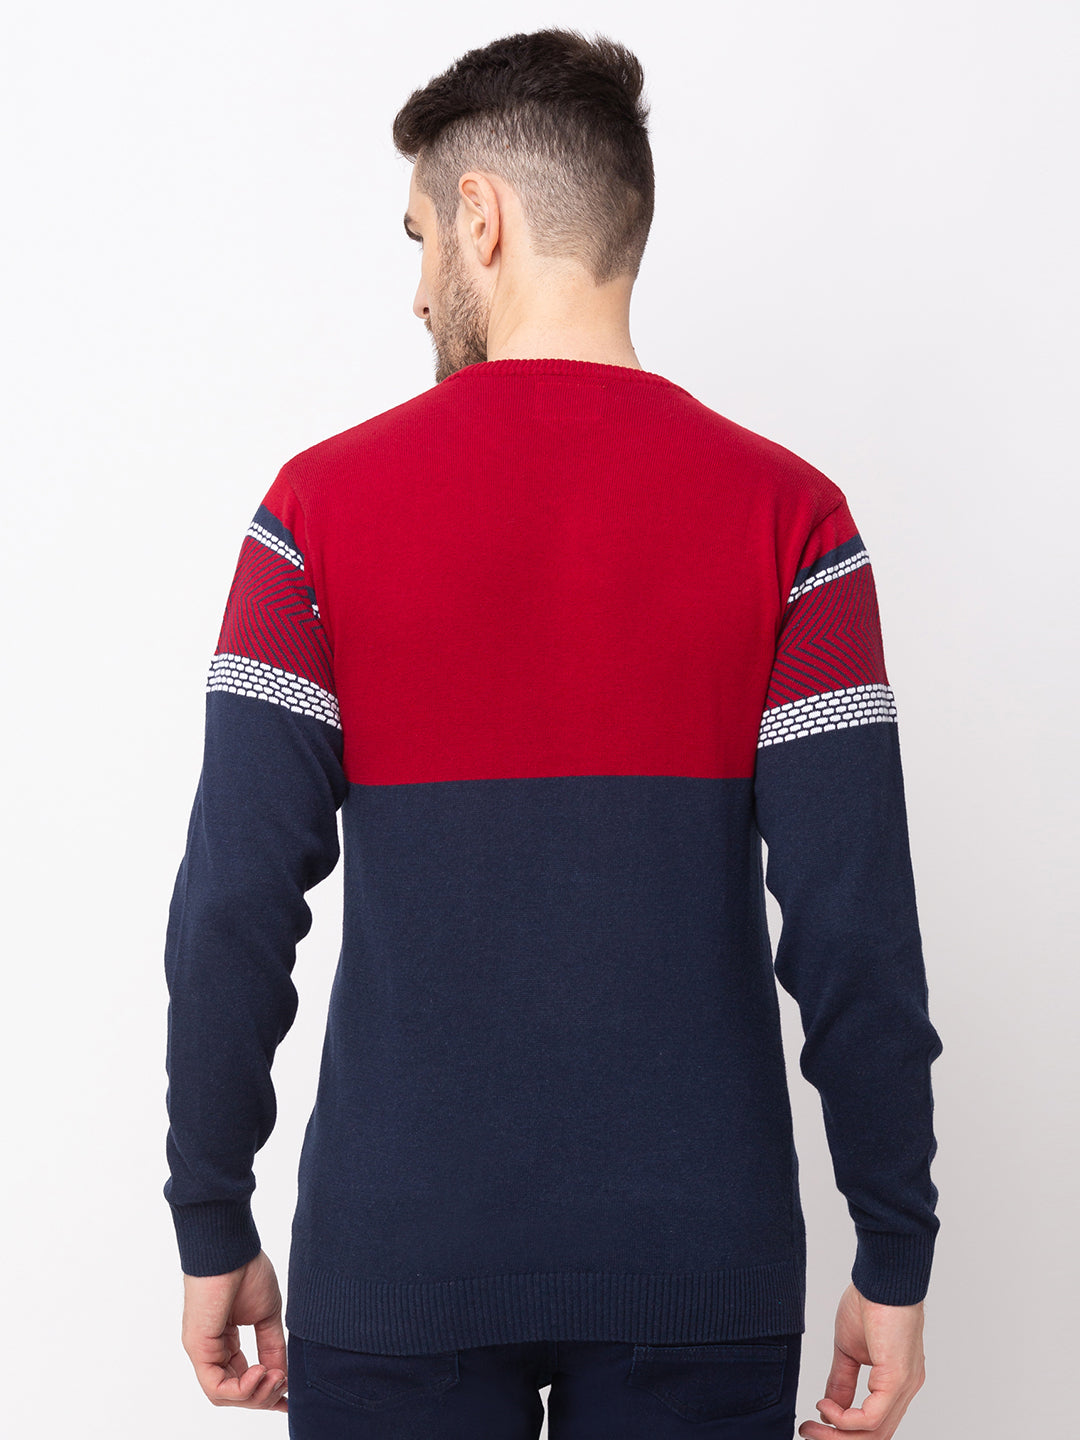 Globus Royal Blue Colourblocked Pullover Sweater-3